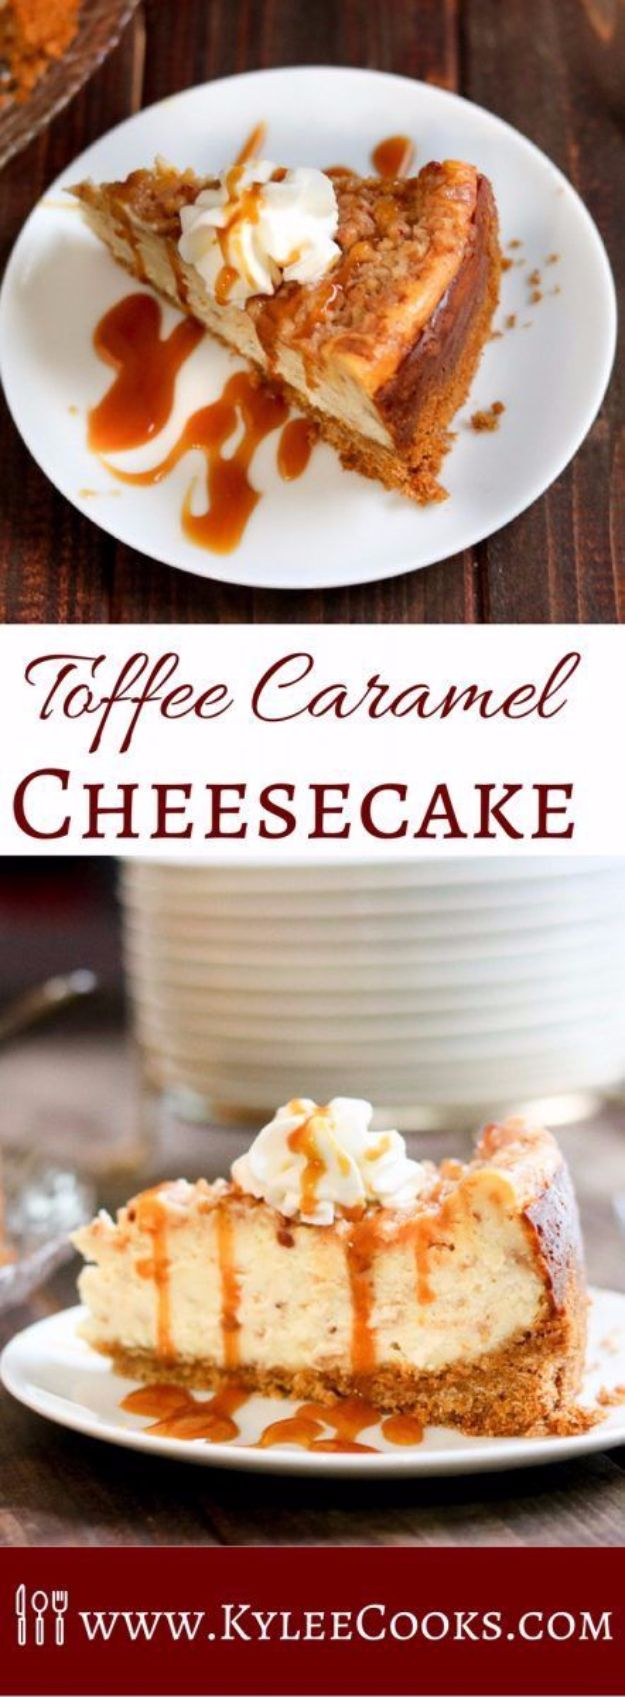 Best Cheesecake Recipes - Toffee Caramel Cheesecake - Easy and Quick Recipe Ideas for Cheesecakes and Desserts - Chocolate, Simple Plain Classic, New York, Mini, Oreo, Lemon, Raspberry and Quick No Bake - Step by Step Instructions and Tutorials for Yummy Dessert - DIY Projects and Crafts by DIY JOY http://diyjoy.com/best-cheesecake-recipes